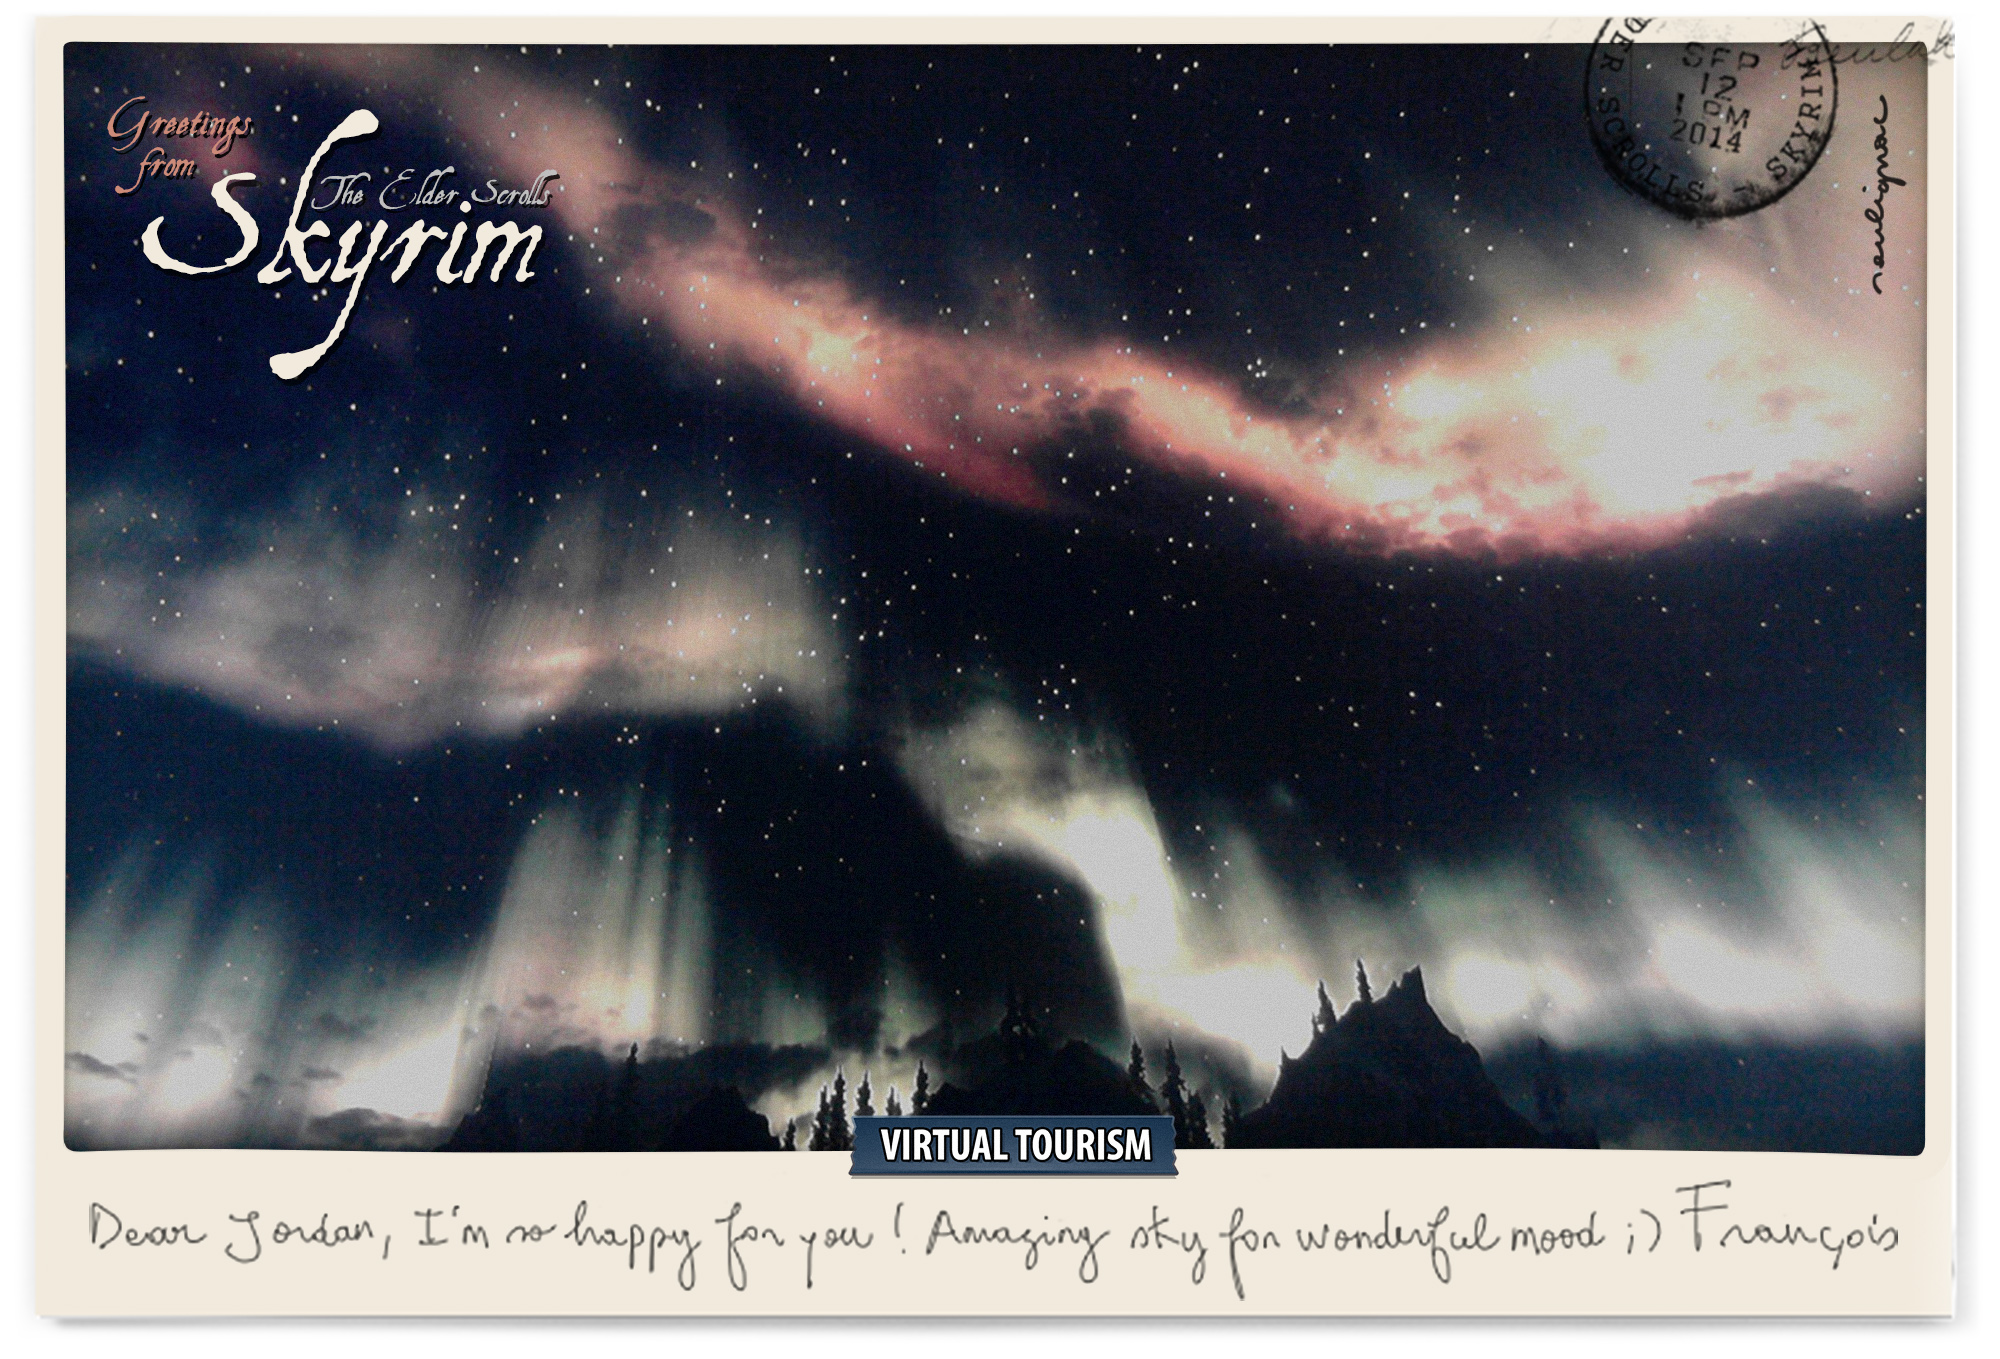 Postcards from Skyrim virtual worlds for JORDAN - Francois Soulignac - Virtual Tourism, In-game photography, February 2014